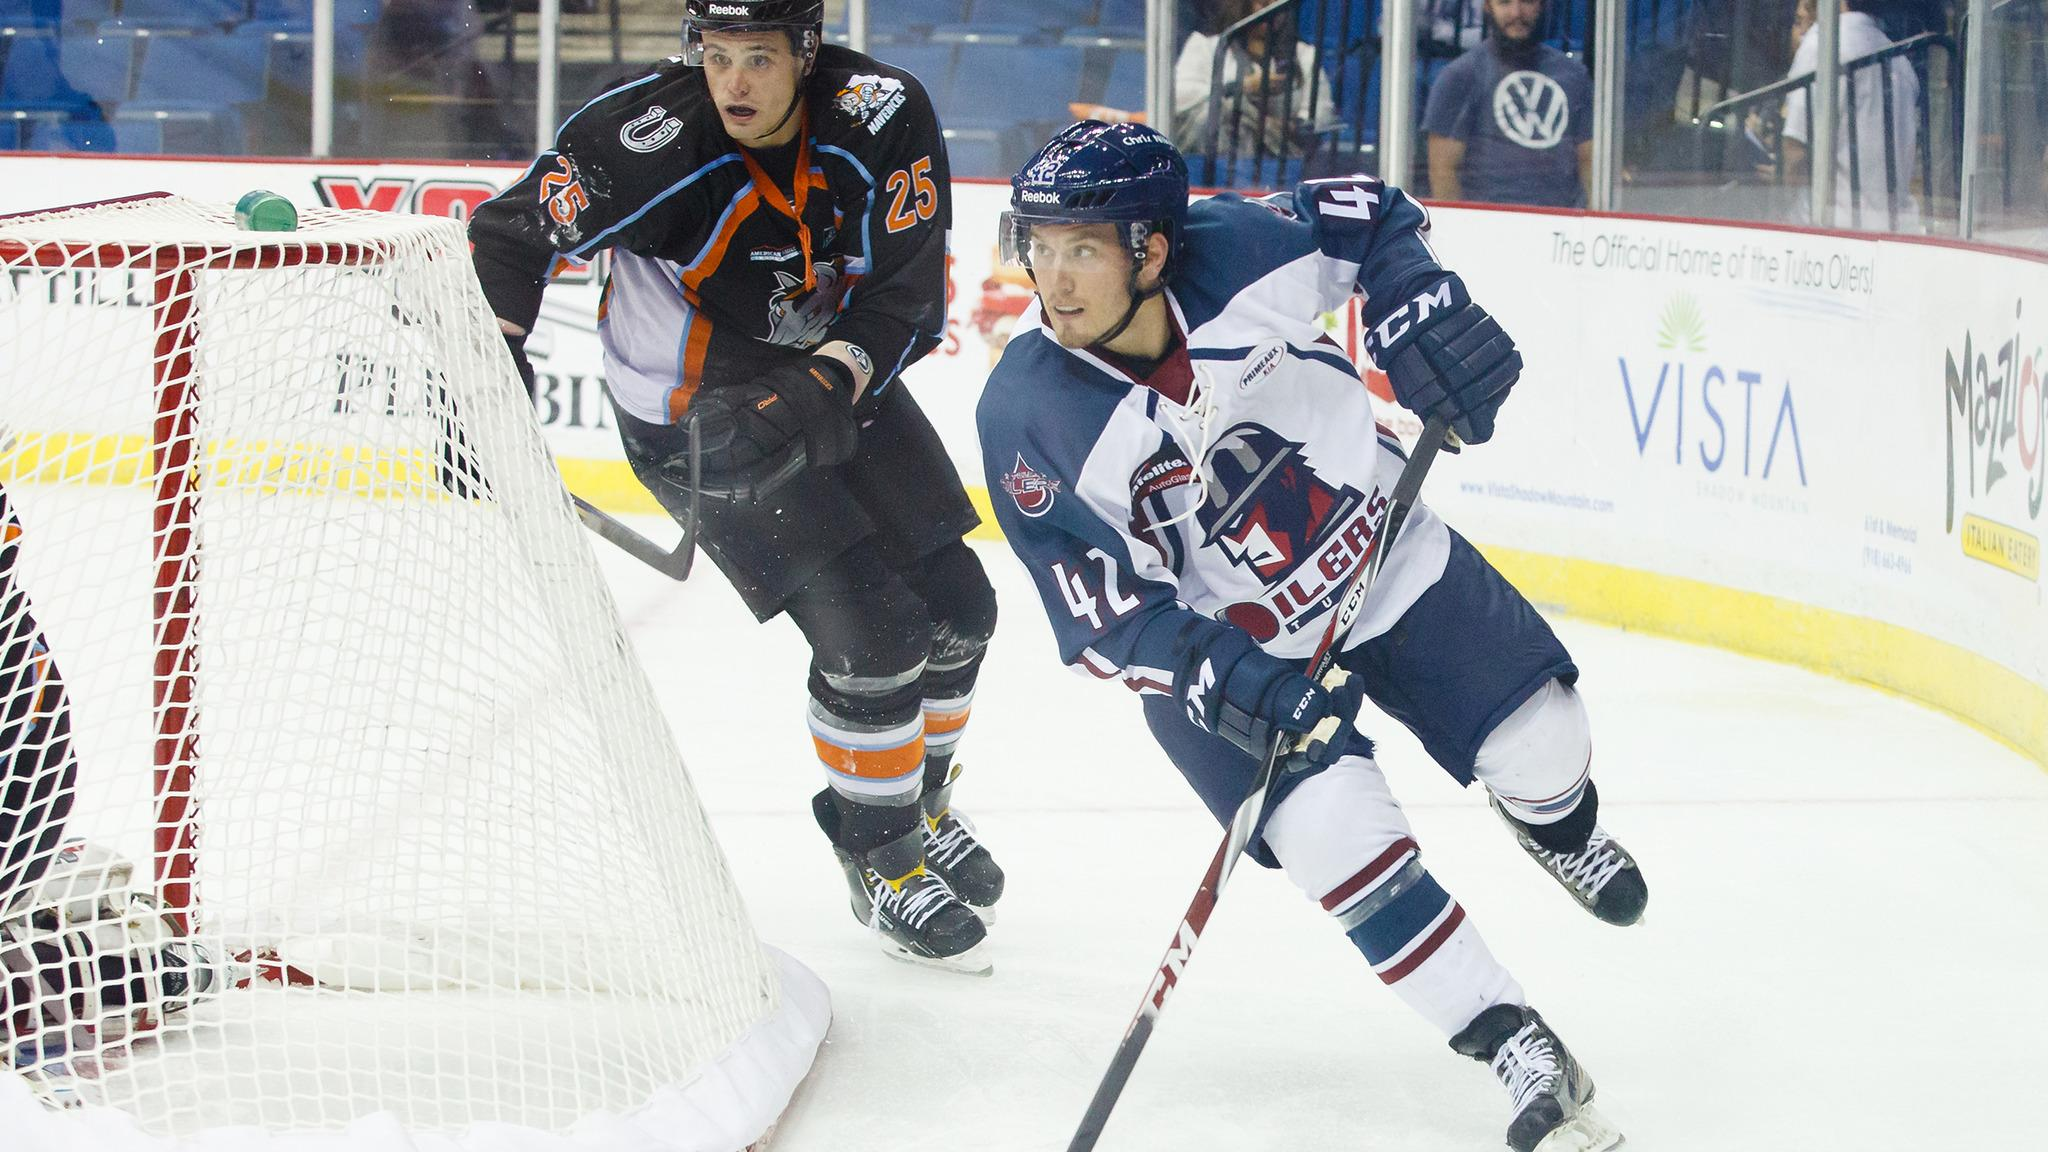 Tulsa Oilers vs. Rapid City Rush